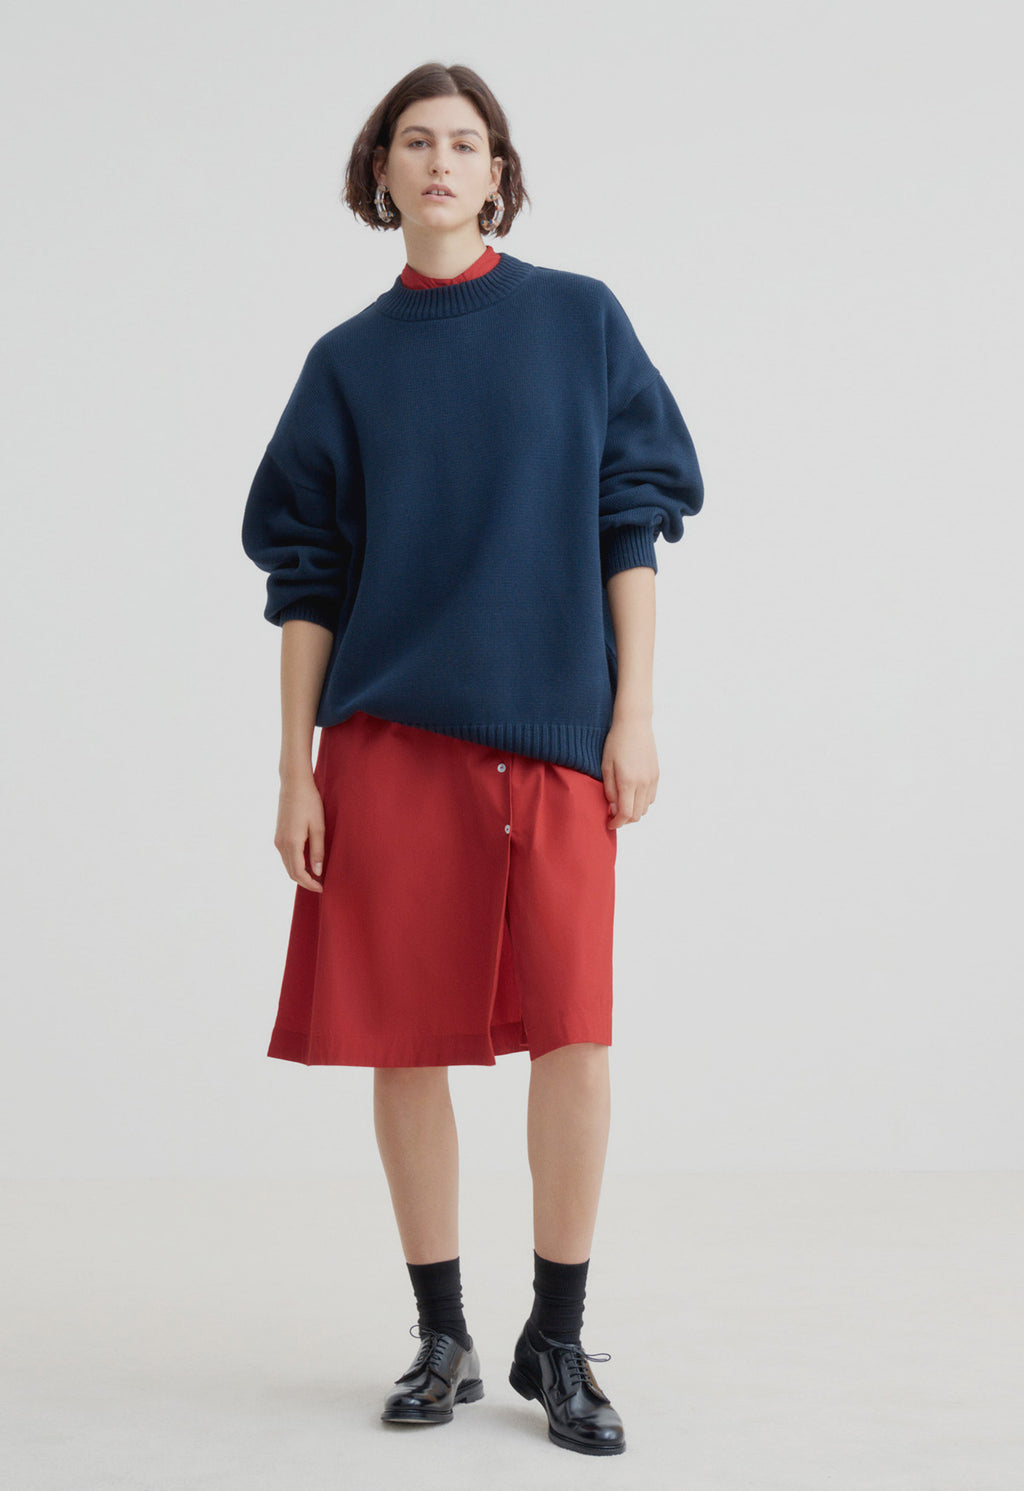 Arc Jumper Navy, Sweater, KOWTOW, - nois